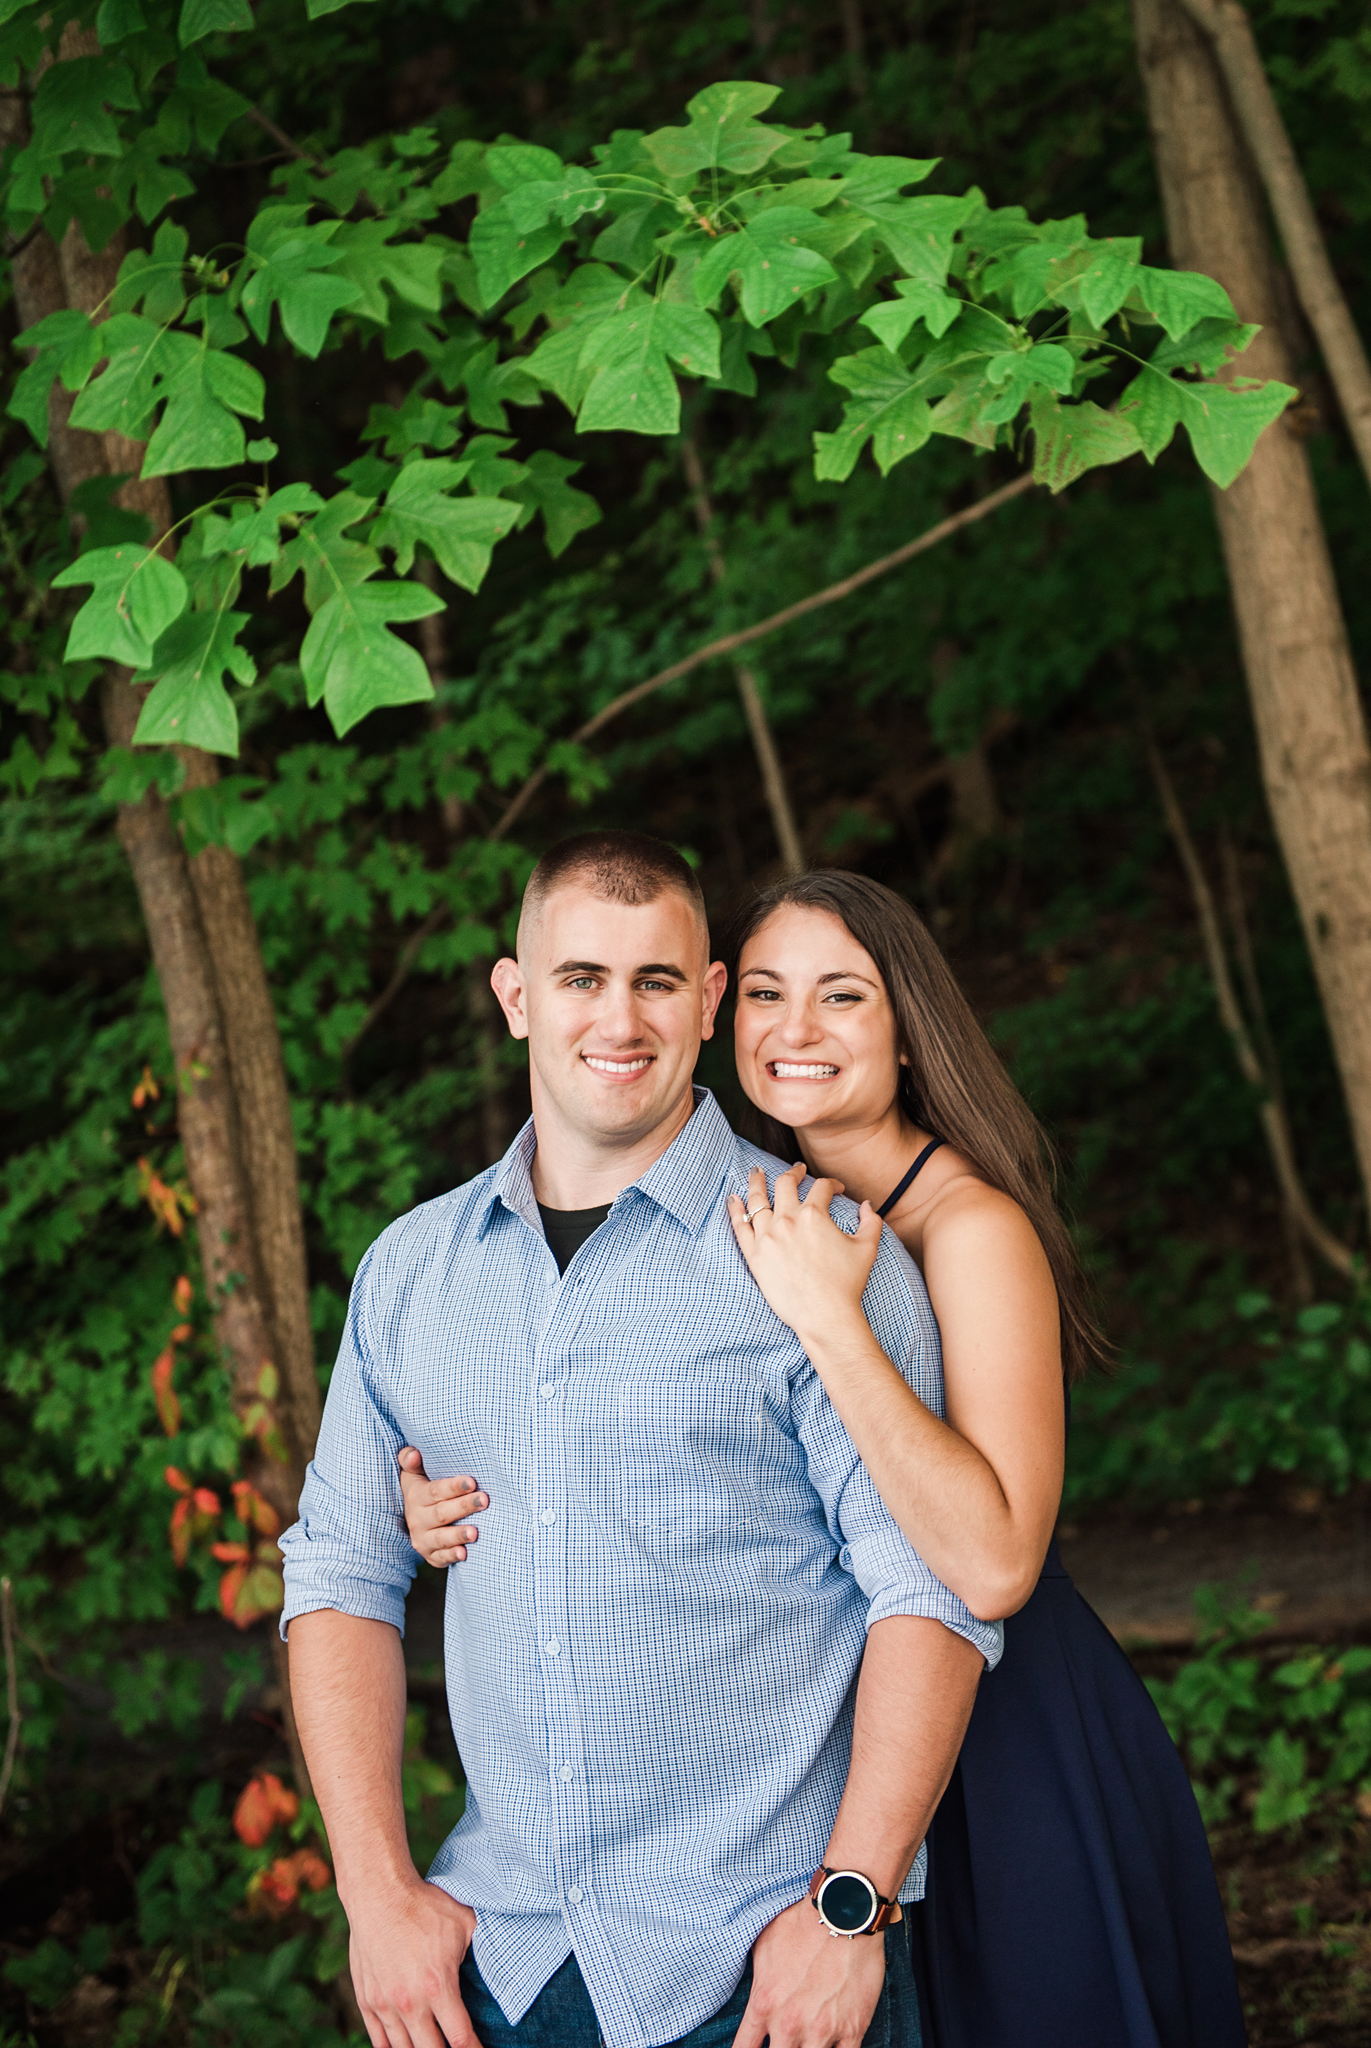 Green_Lakes_State_Park_Syracuse_Engagement_Session_JILL_STUDIO_Rochester_NY_Photographer_DSC_1109.jpg